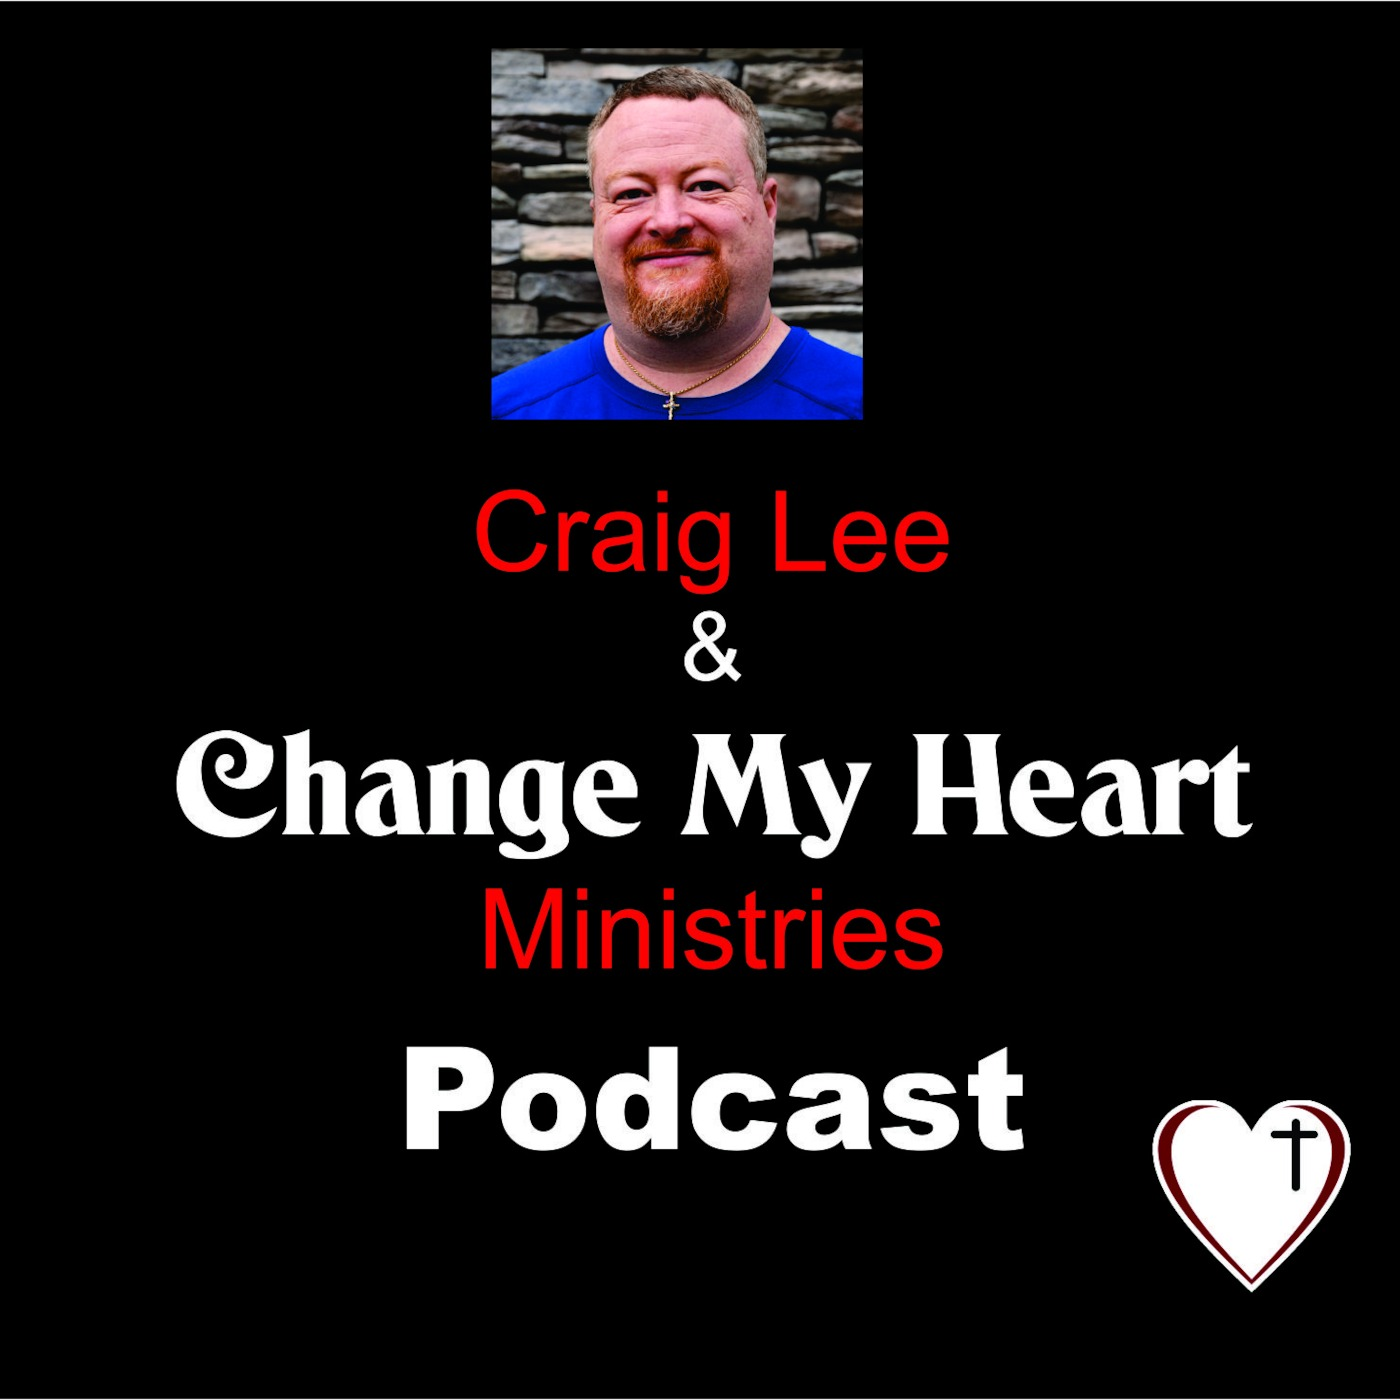 Craig Lee & Change My Heart Ministries